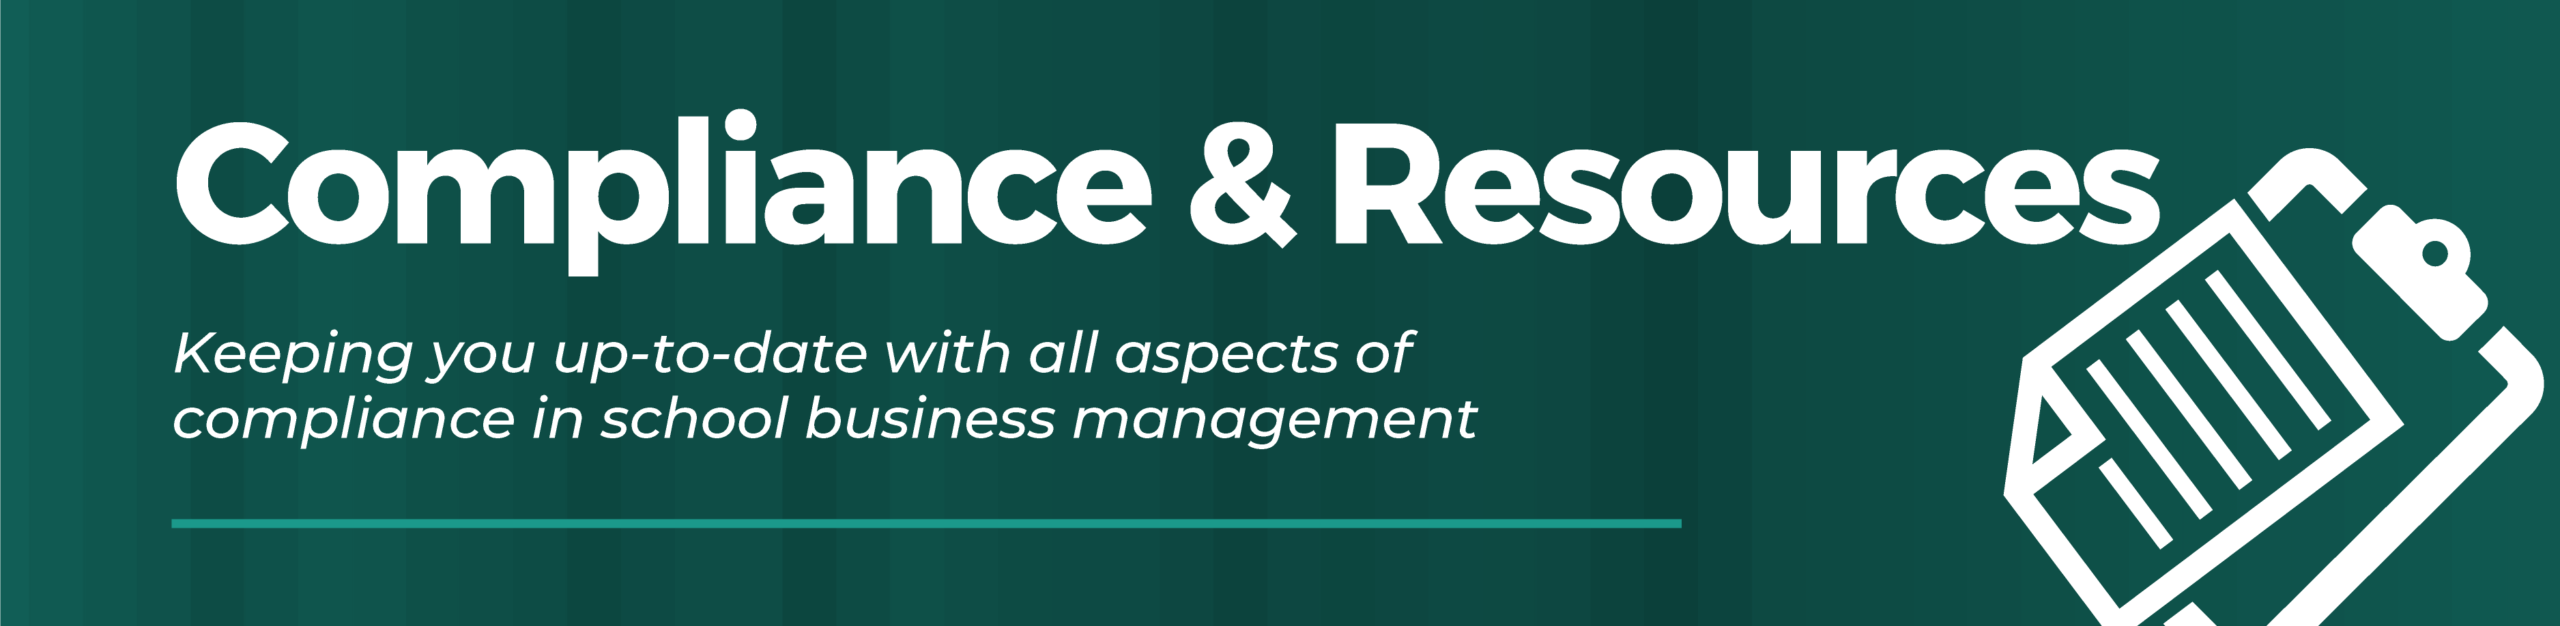 Compliance & Resources. Keeping you up-to-date with all aspects of compliance in school business management.